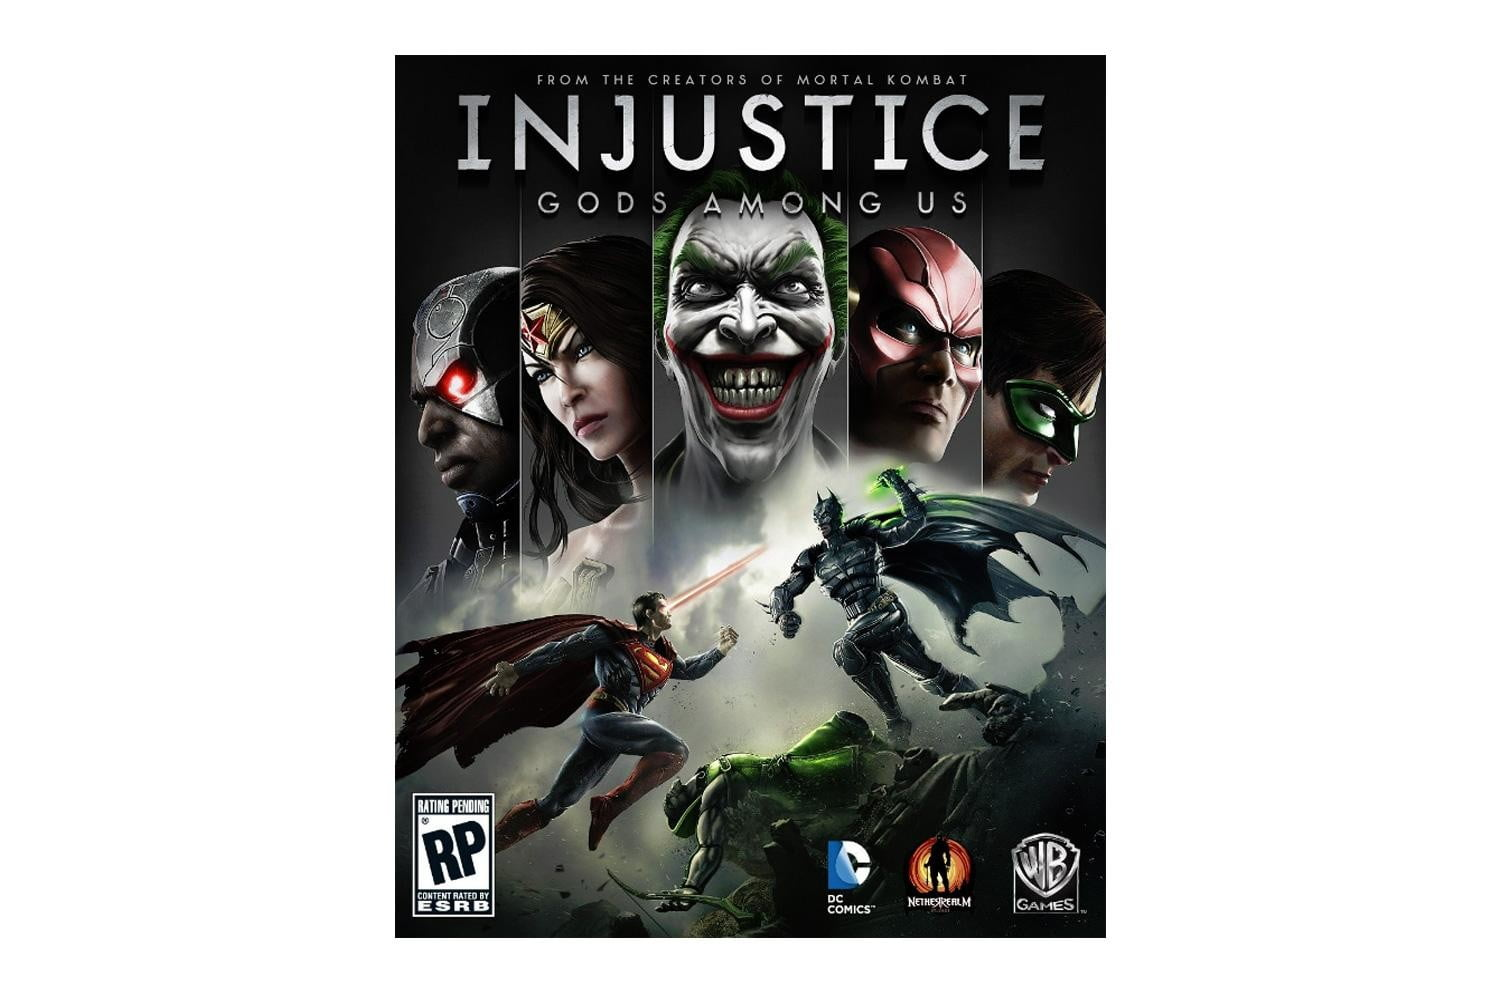 Injustice-Gods-Among-Us-cover-art